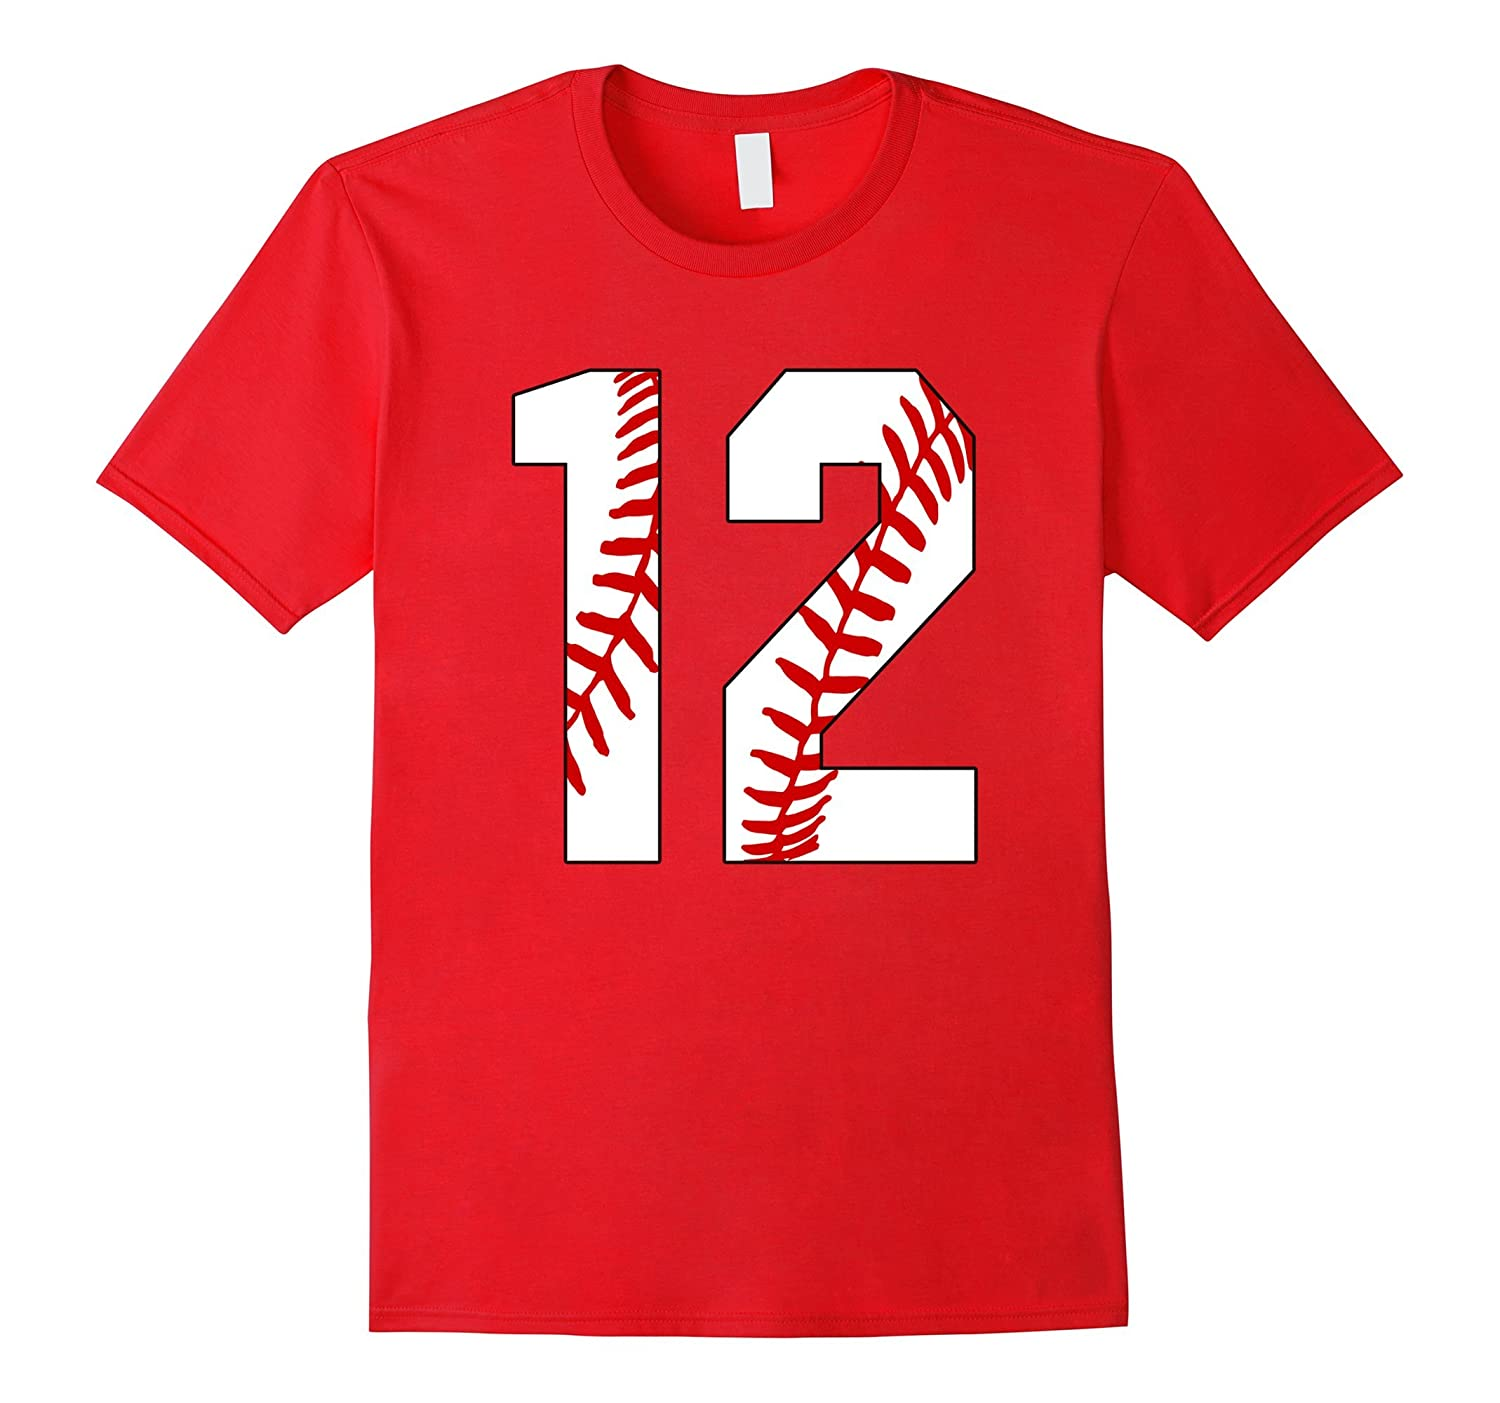 #12 Baseball Laces Baseball Mom Jersey Love Baseball T-shirt-TH